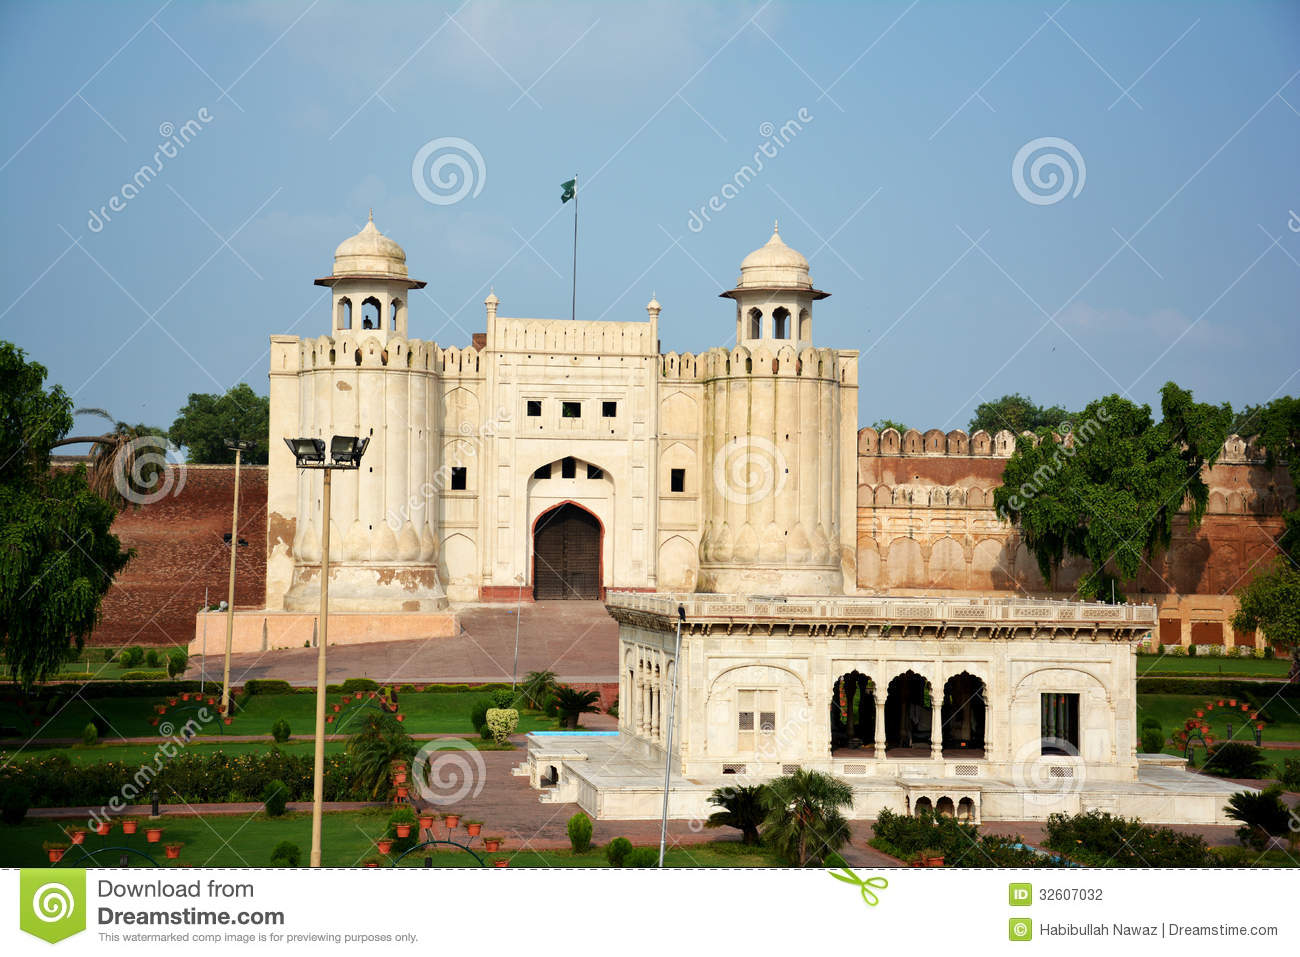 Lahore Fort and Tomb of Allama Iqbal